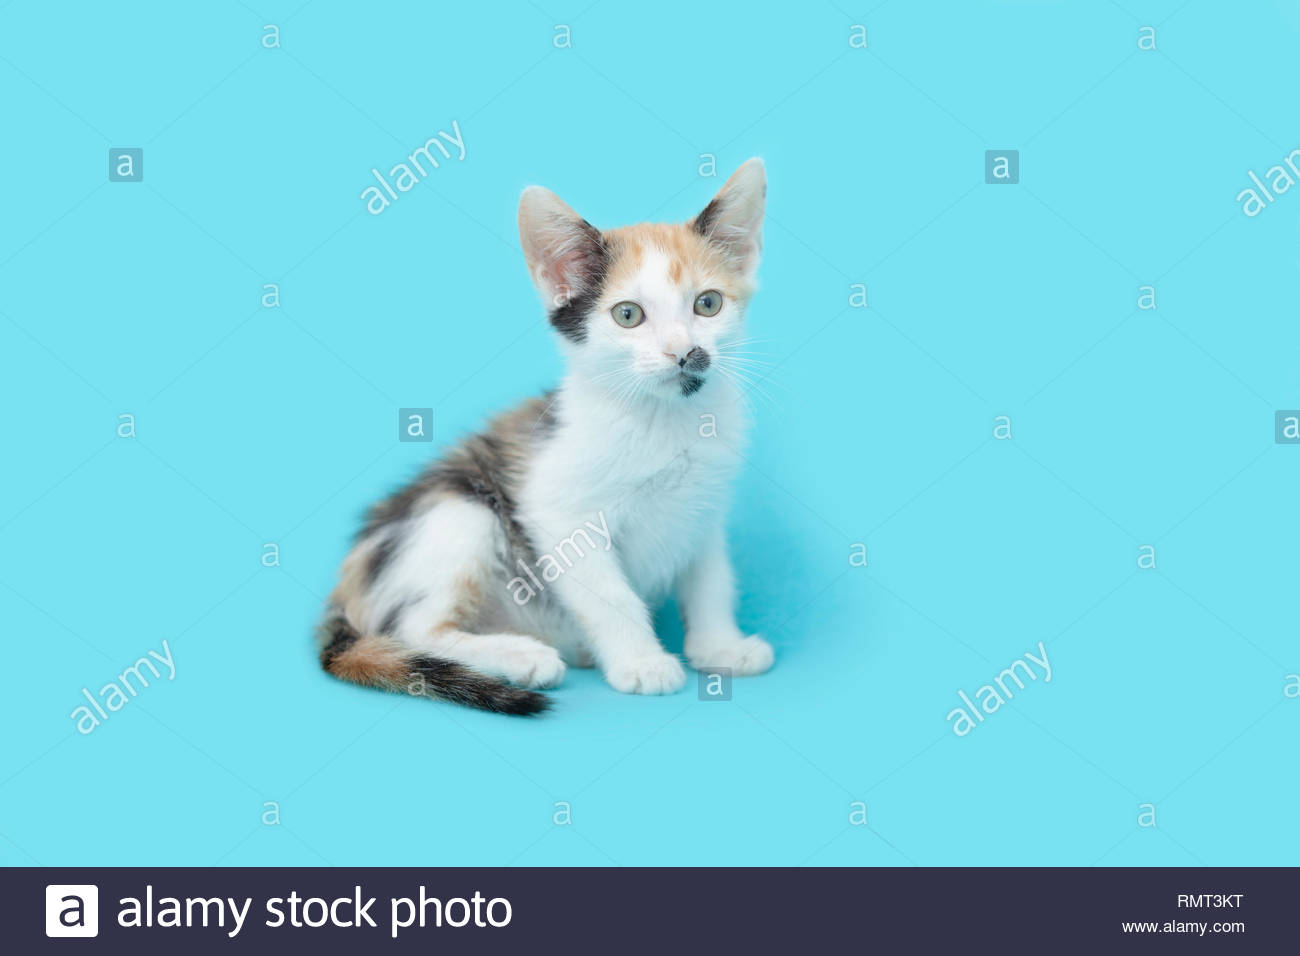 Young six week old white Calico kitten sitting up on  a blue blanket background. - Stock Image